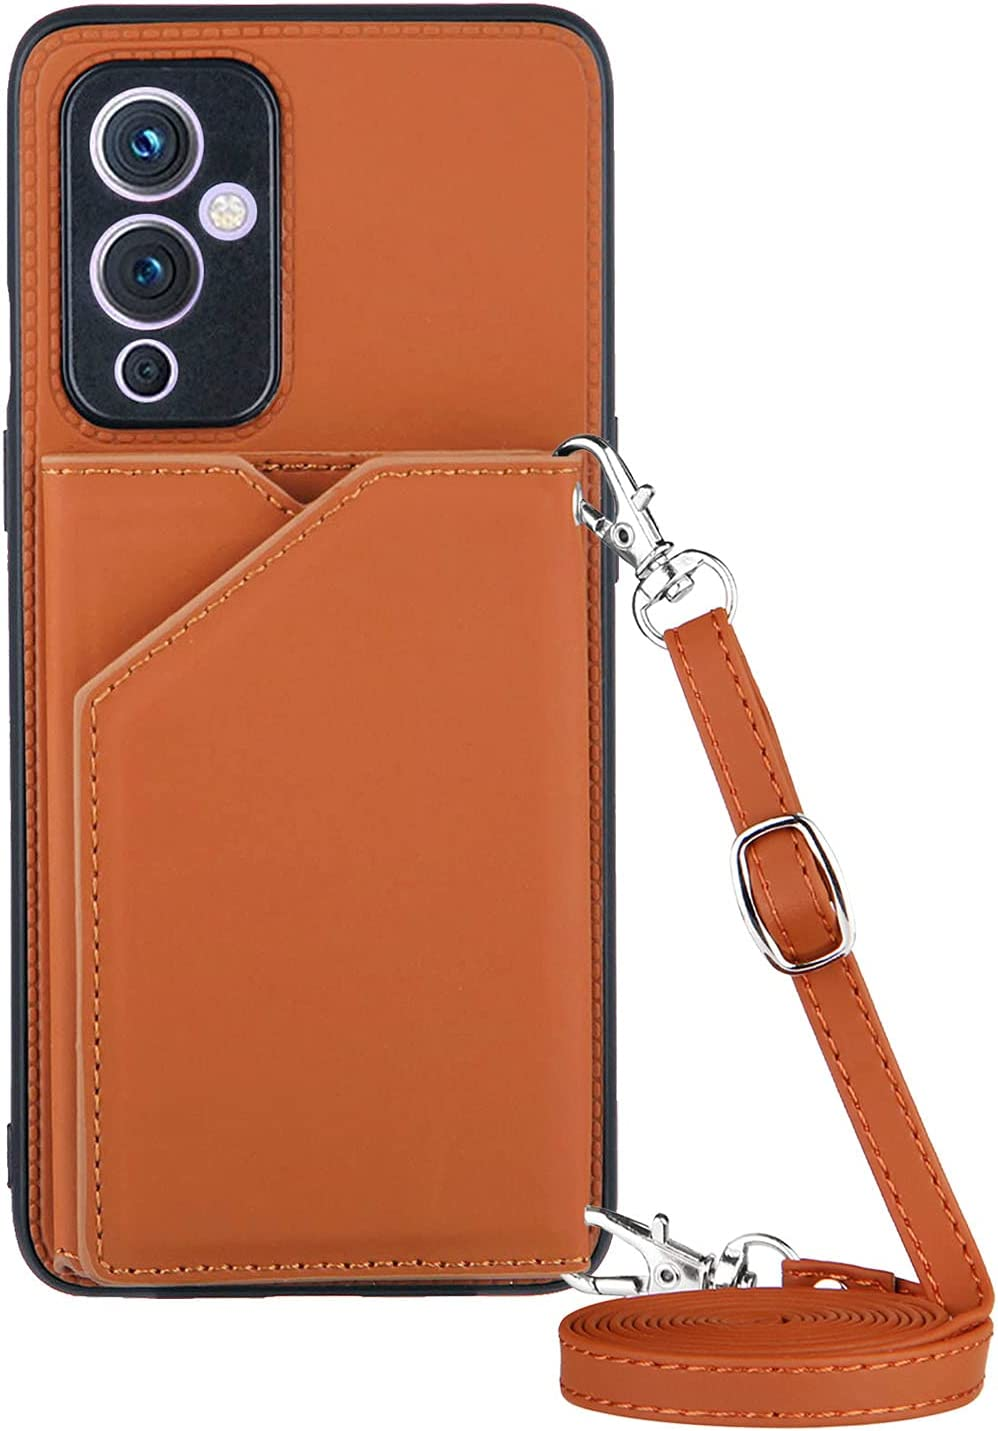 1+ 9 Wallet Case for Oneplus 9 5G Lanyard Case, Shockproof Stand Bumper Cover, Anti-Resistant Cross-Body Girly Case (Brown,Oneplus 9)